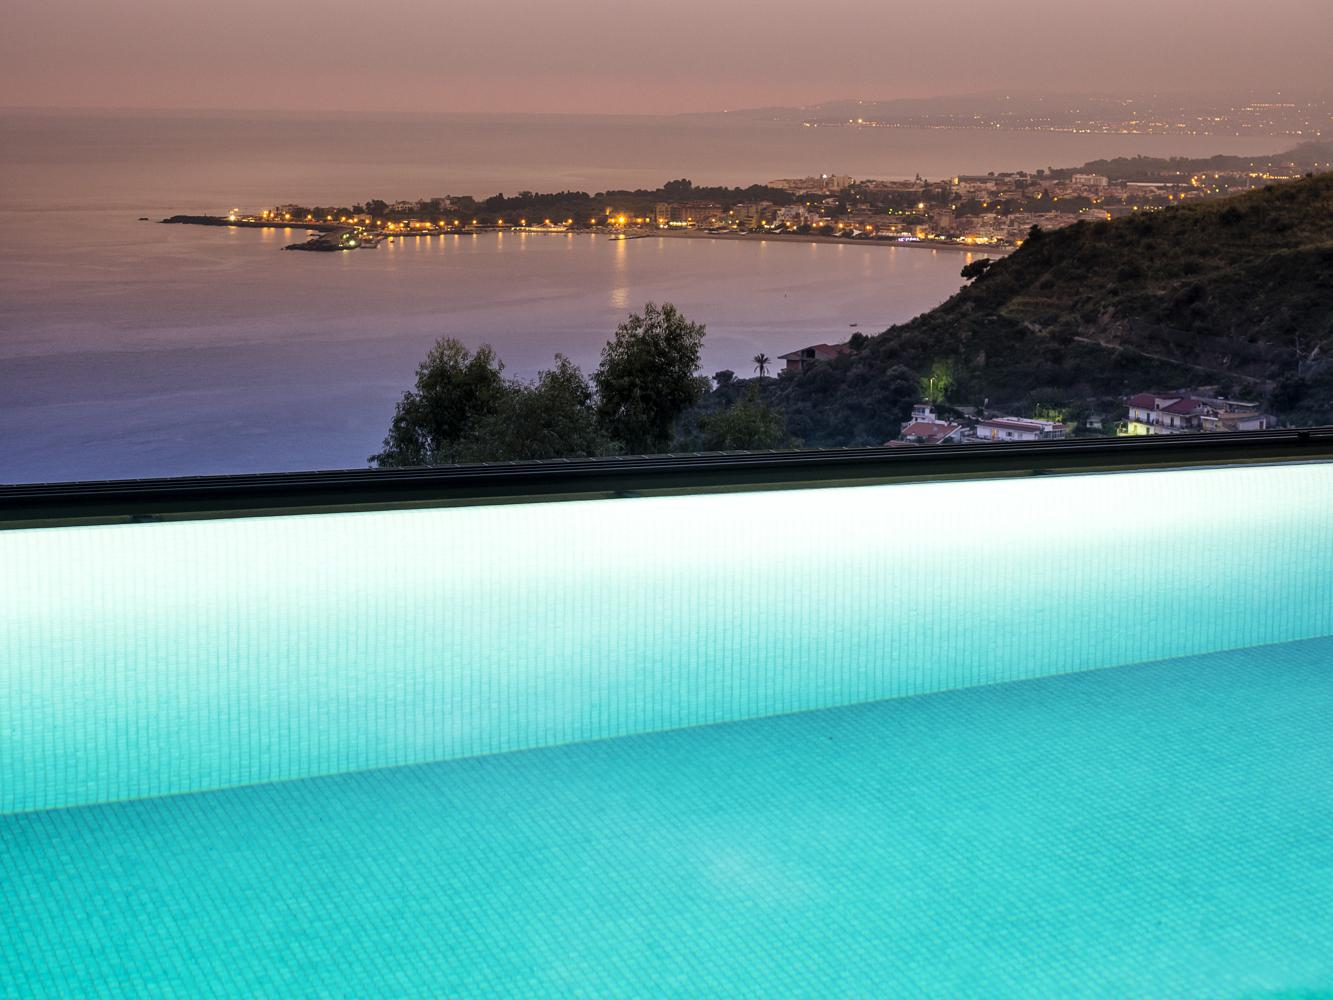 Swimming Pool - Apartments in Taormina - Luxury Residence Taormina - Room rent- Holiday homes - Sea Residence